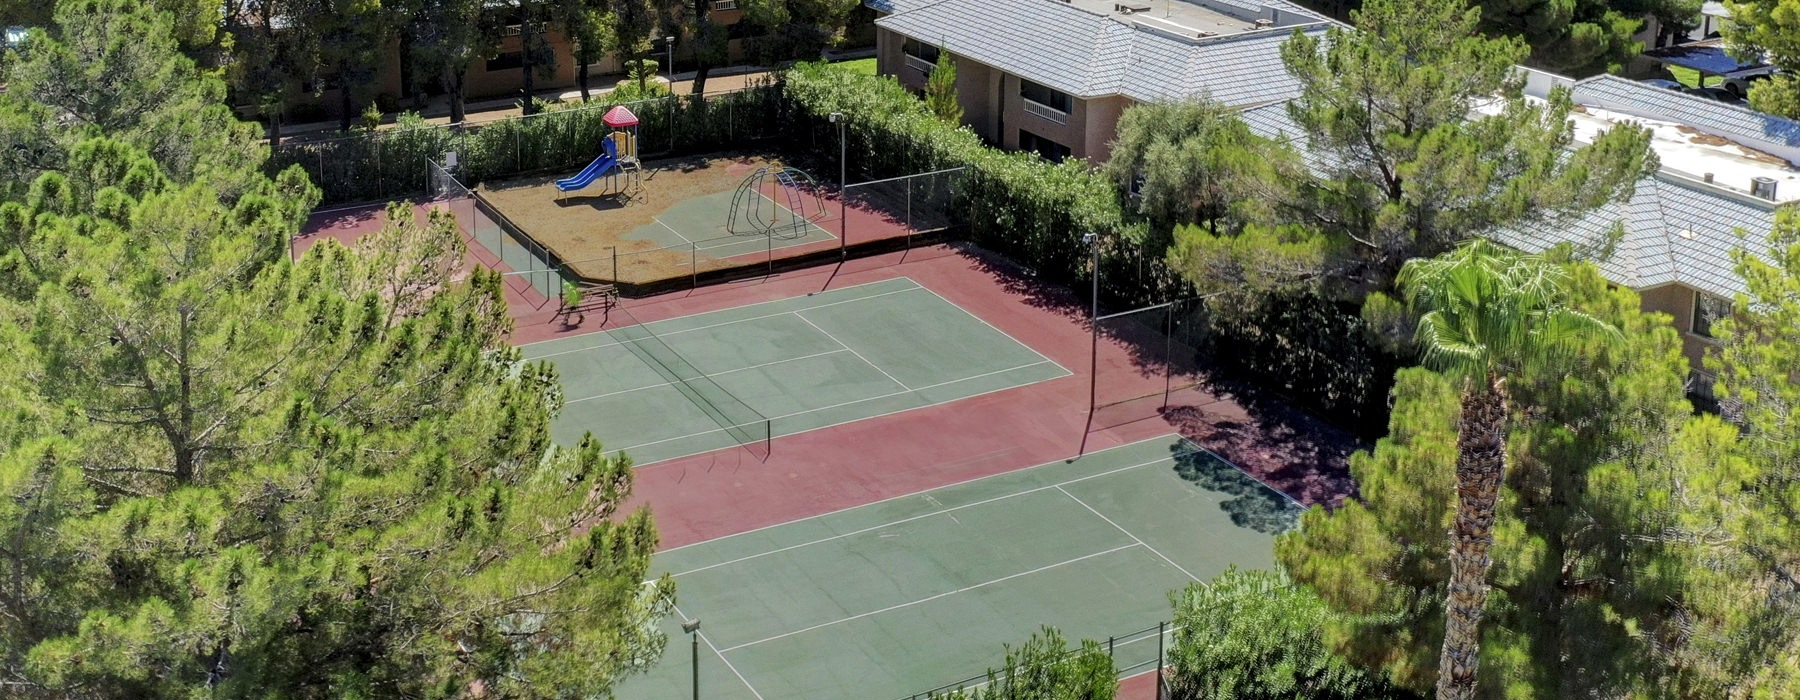 Children's Park With Nearby Tennis Courts